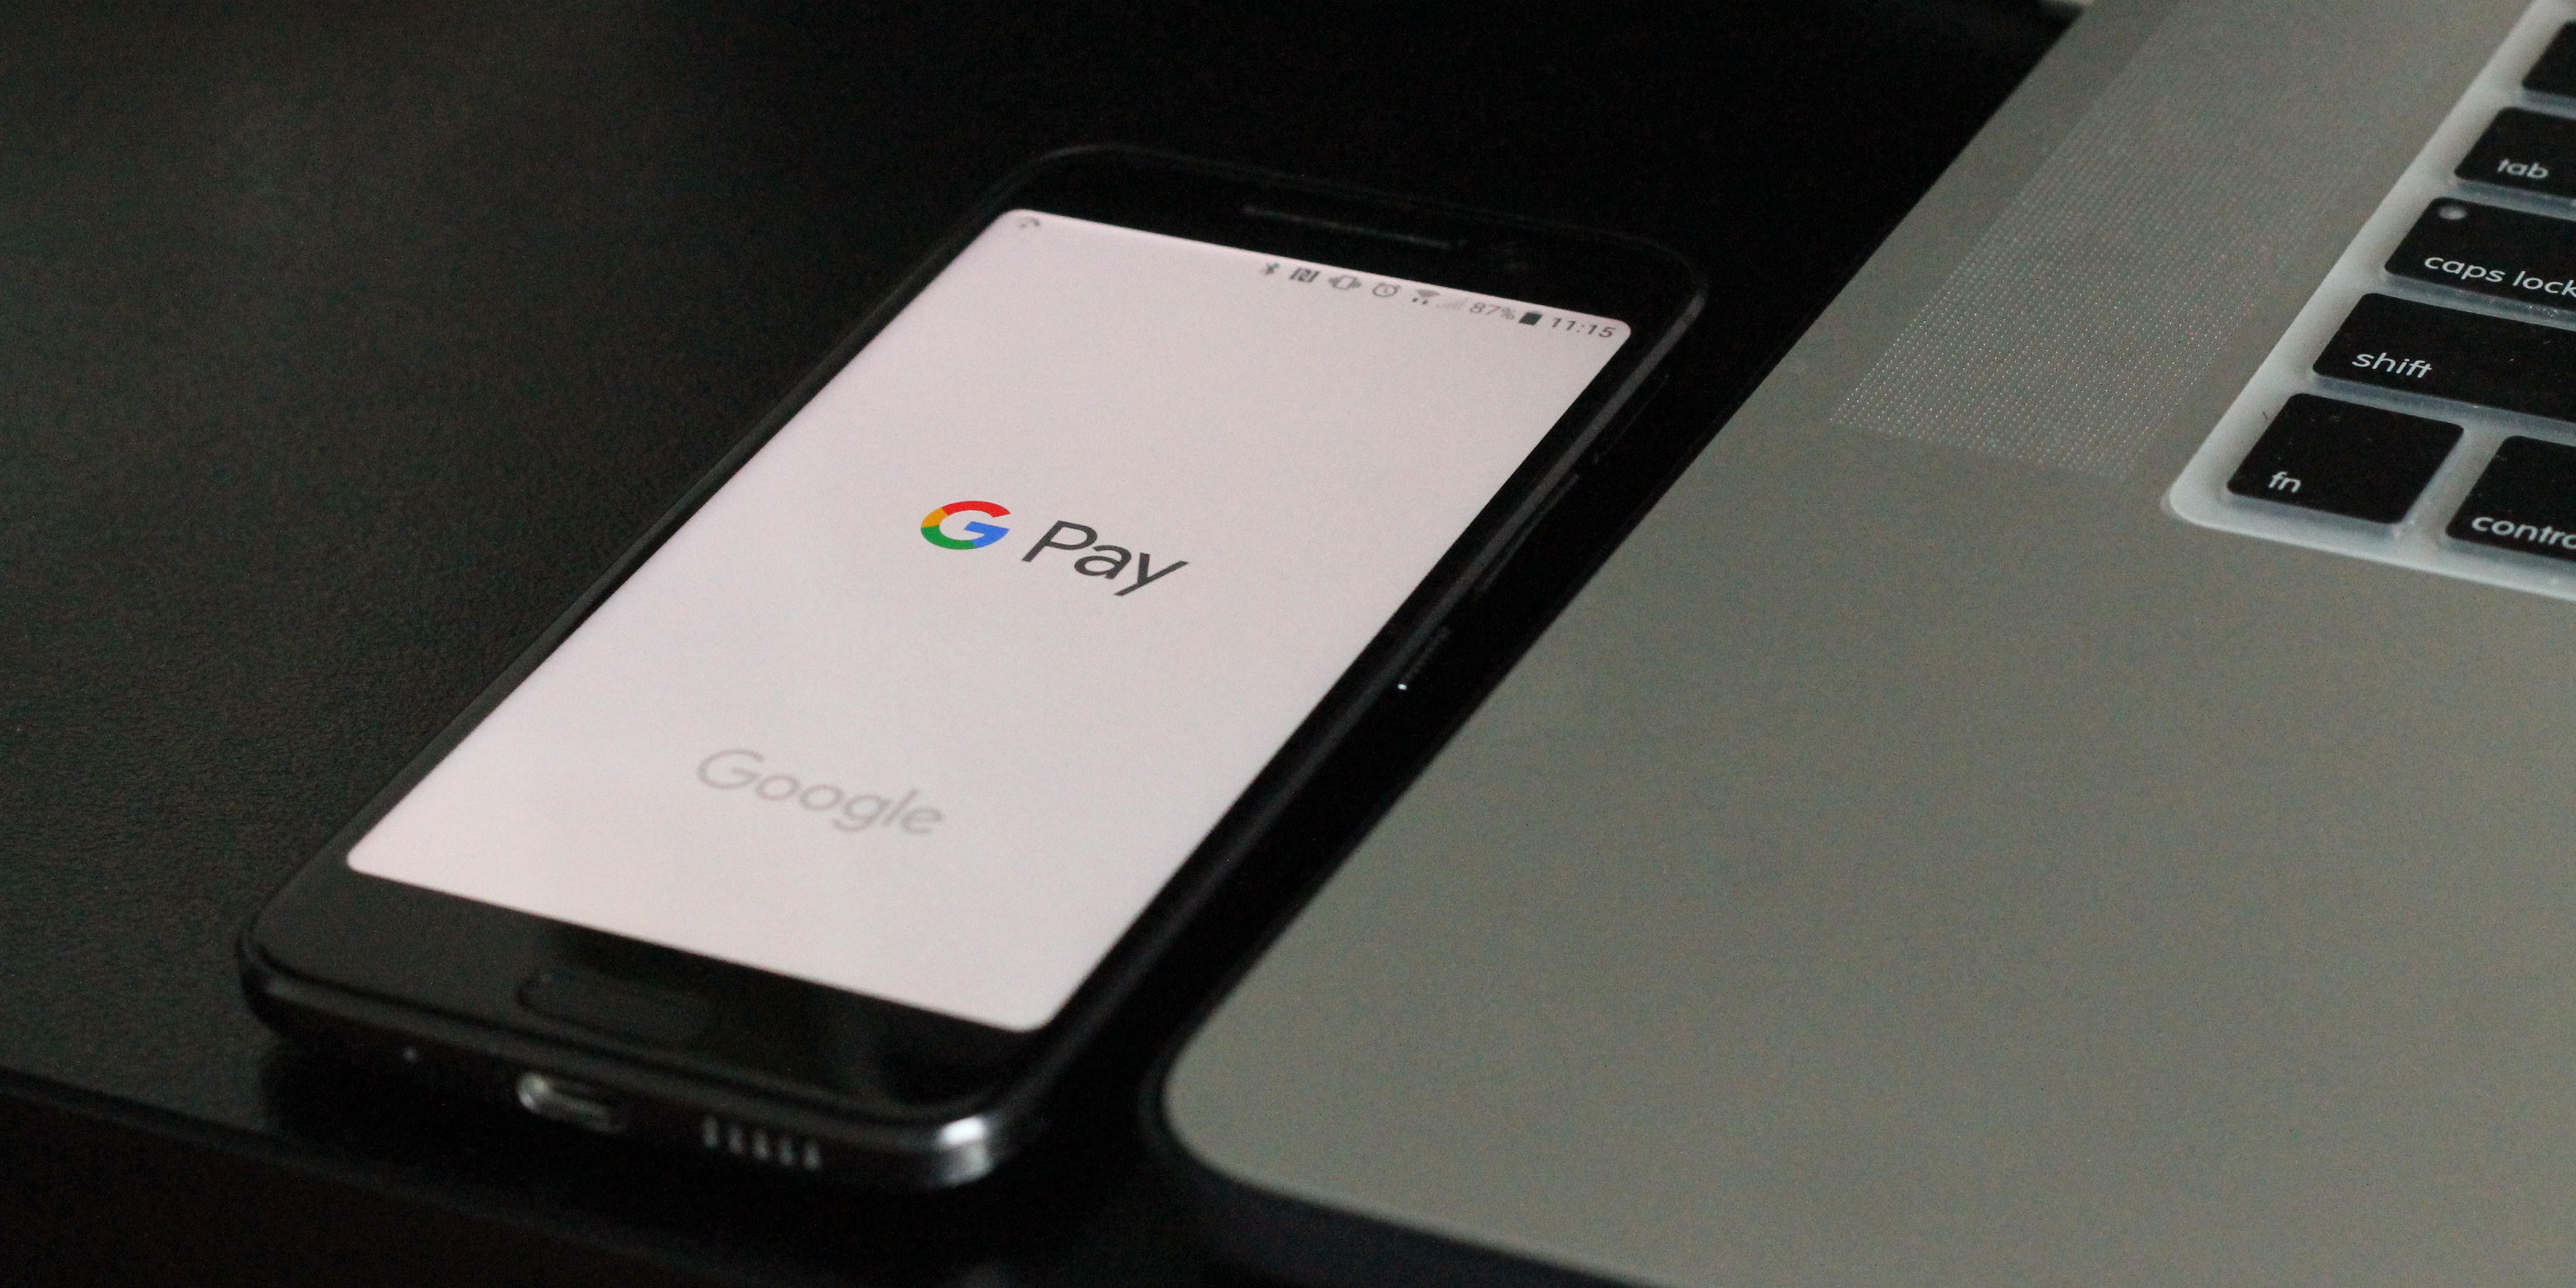 A black smart phone with the GPay app open next to a Macbook